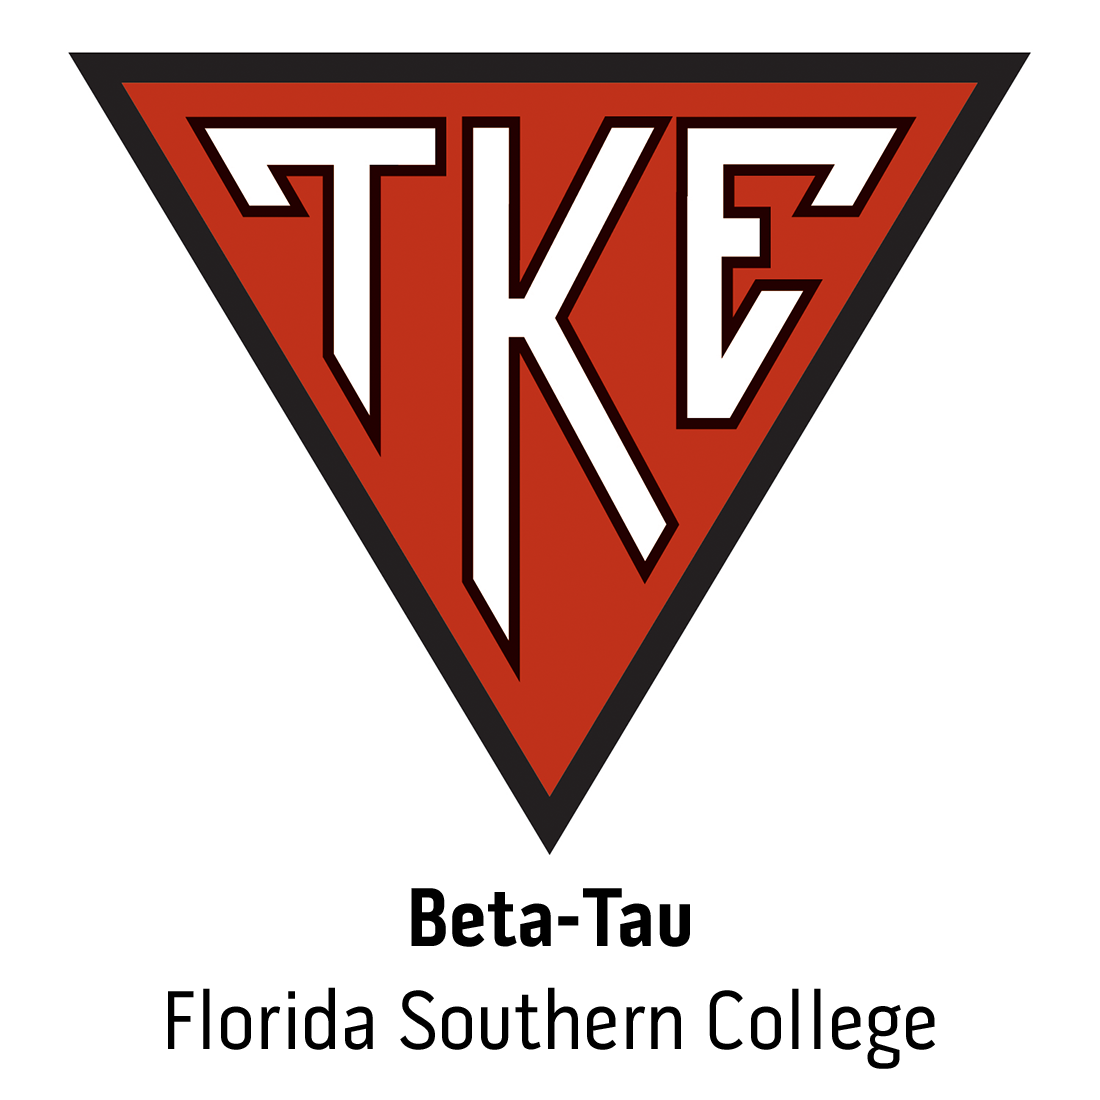 Beta-Tau Chapter at Florida Southern College